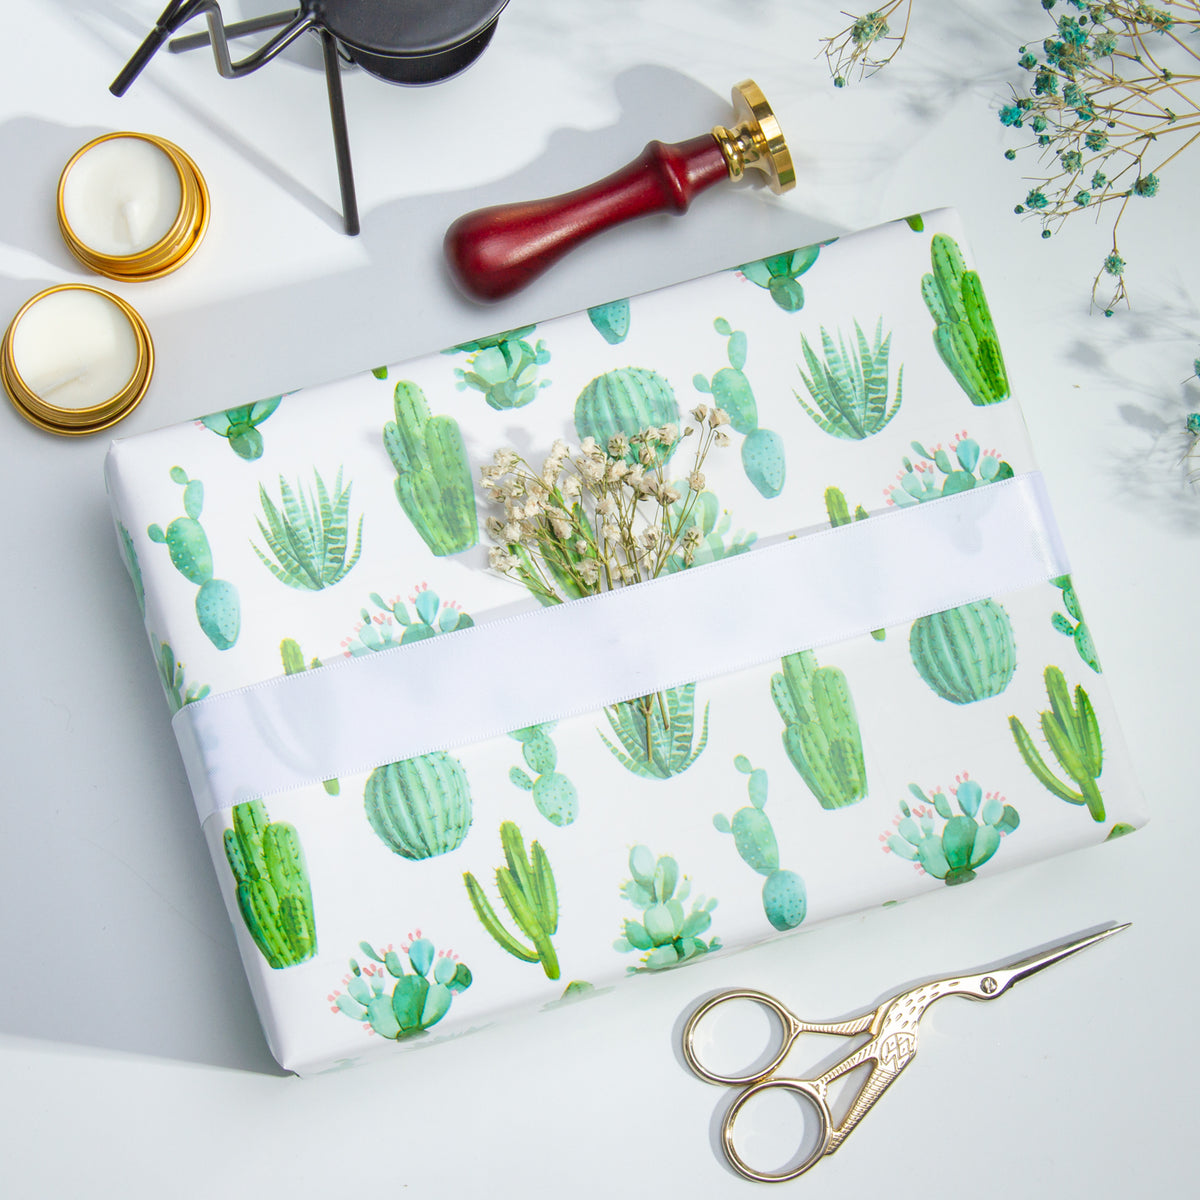 Wrapaholic-Watercolor-Cactus-Print-Gift-Wrapping-Paper-Roll-5